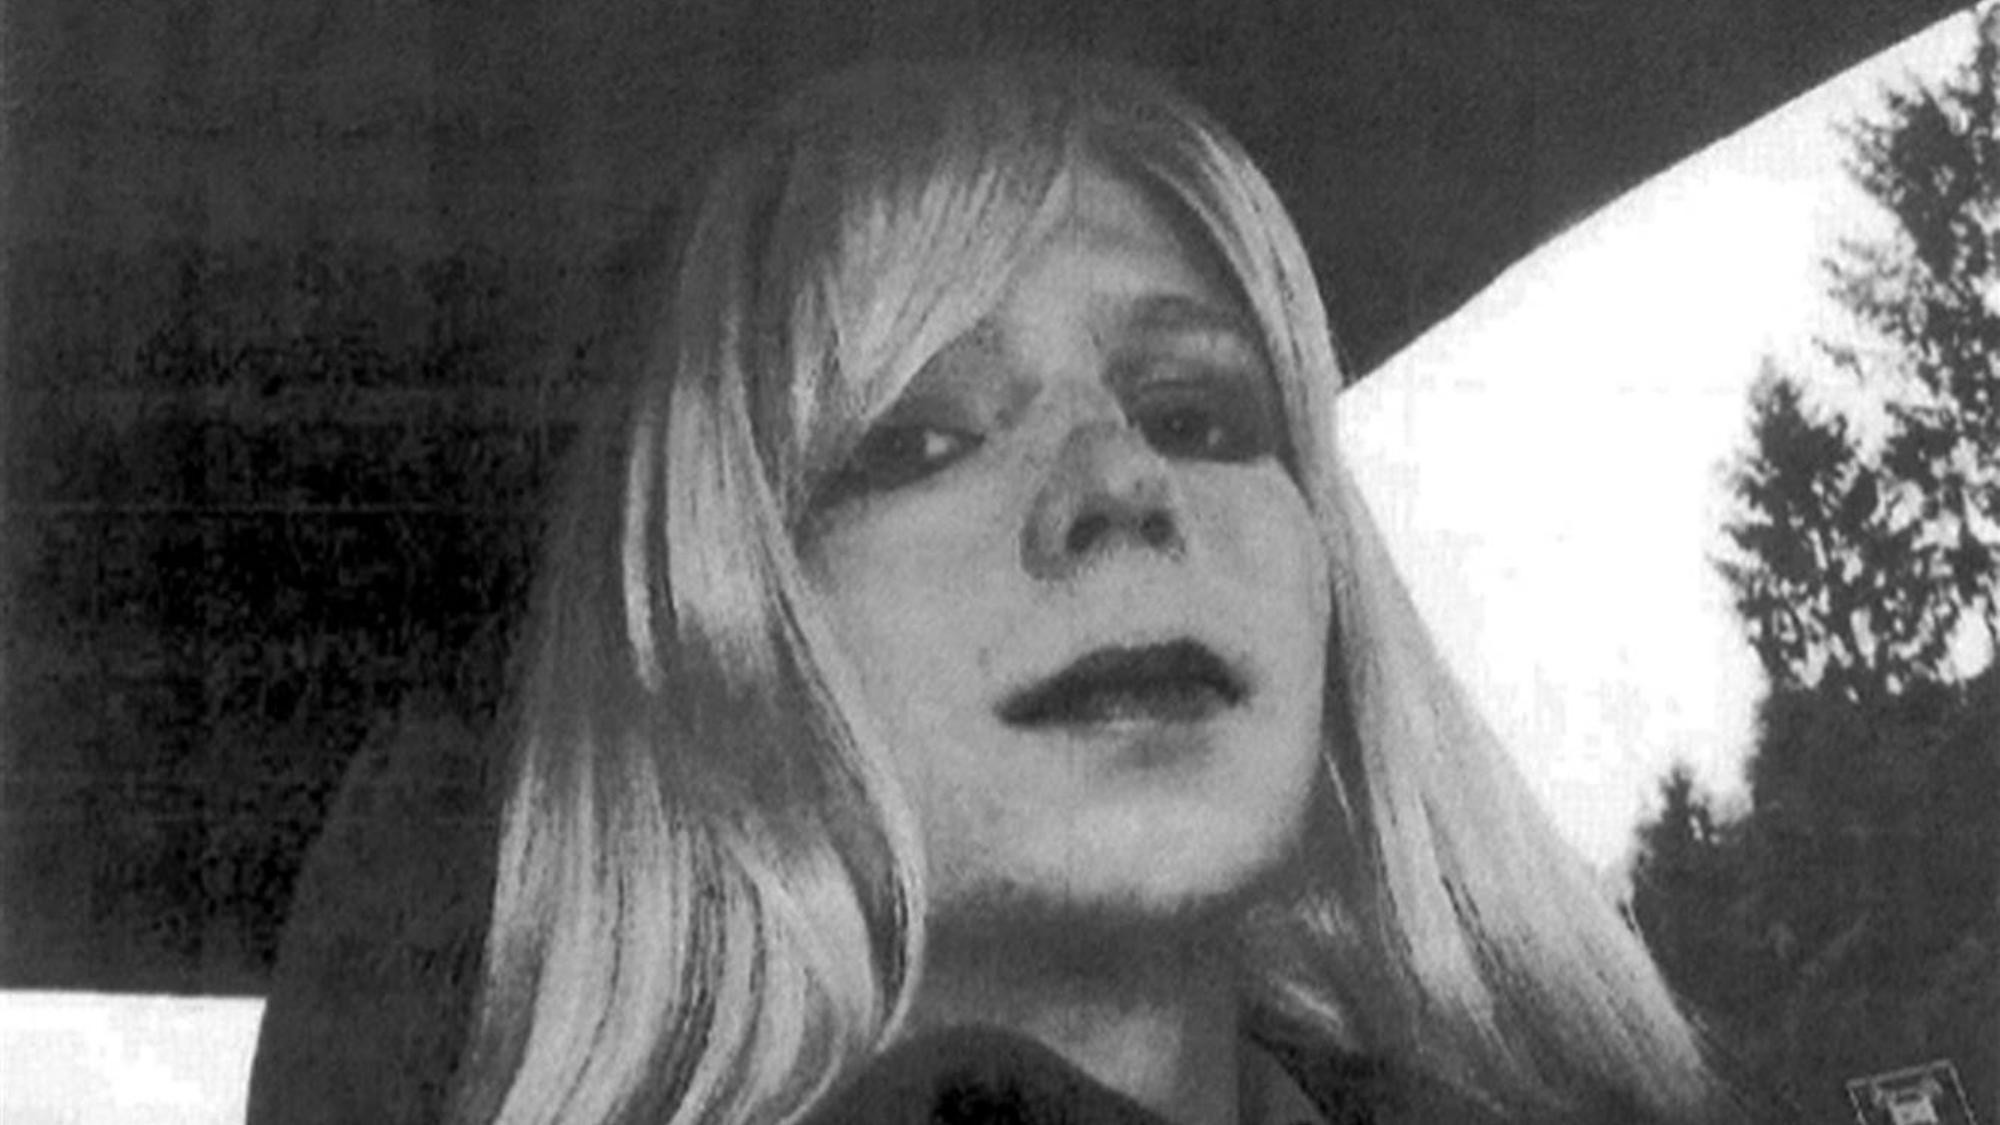 president obama has commuted chelsea manning's sentence